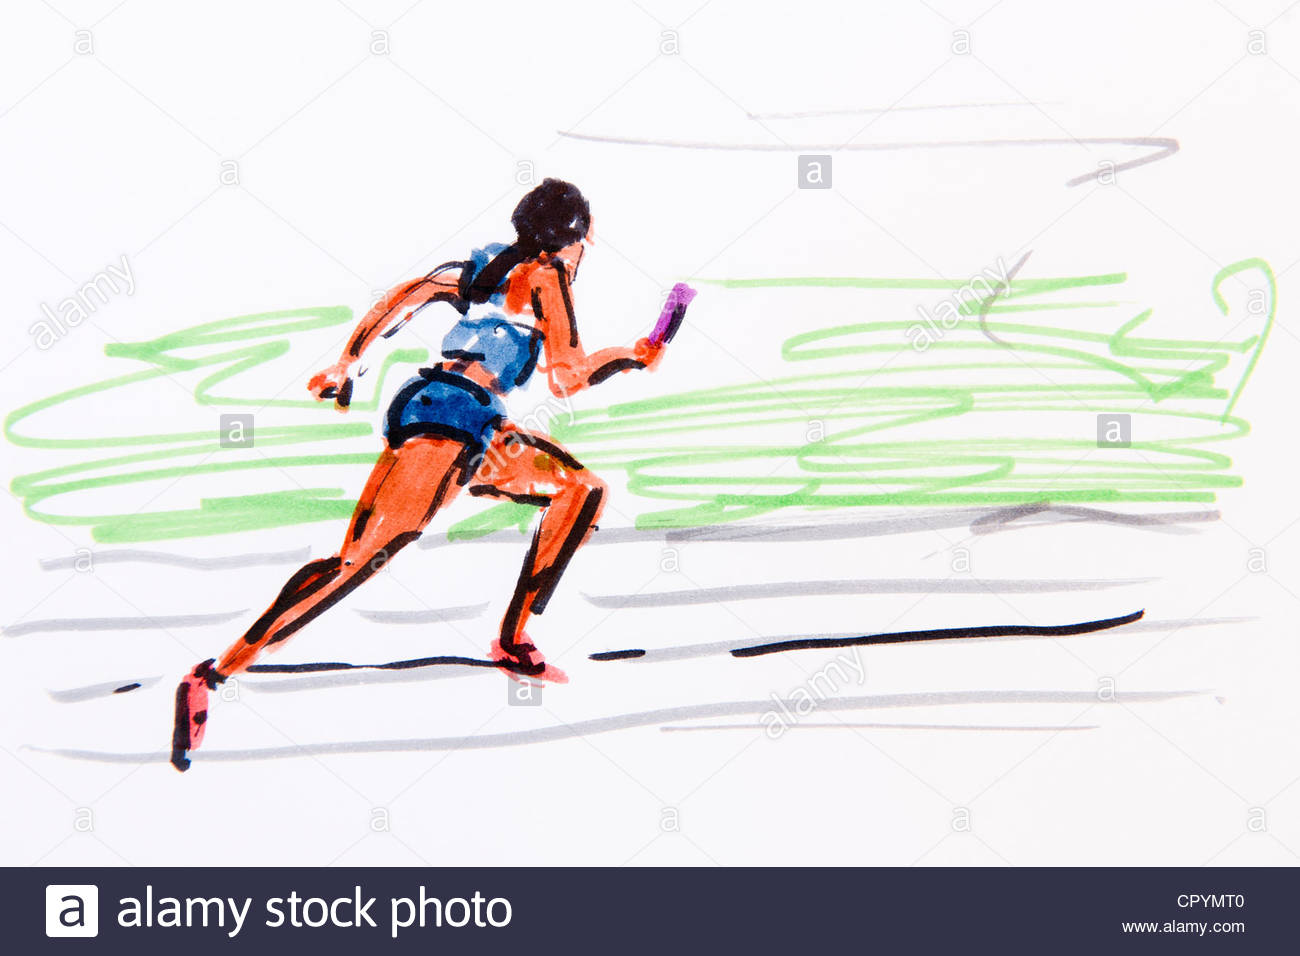 1300x956 Illustration Of A Track And Field Athlete Running Done In Sketch